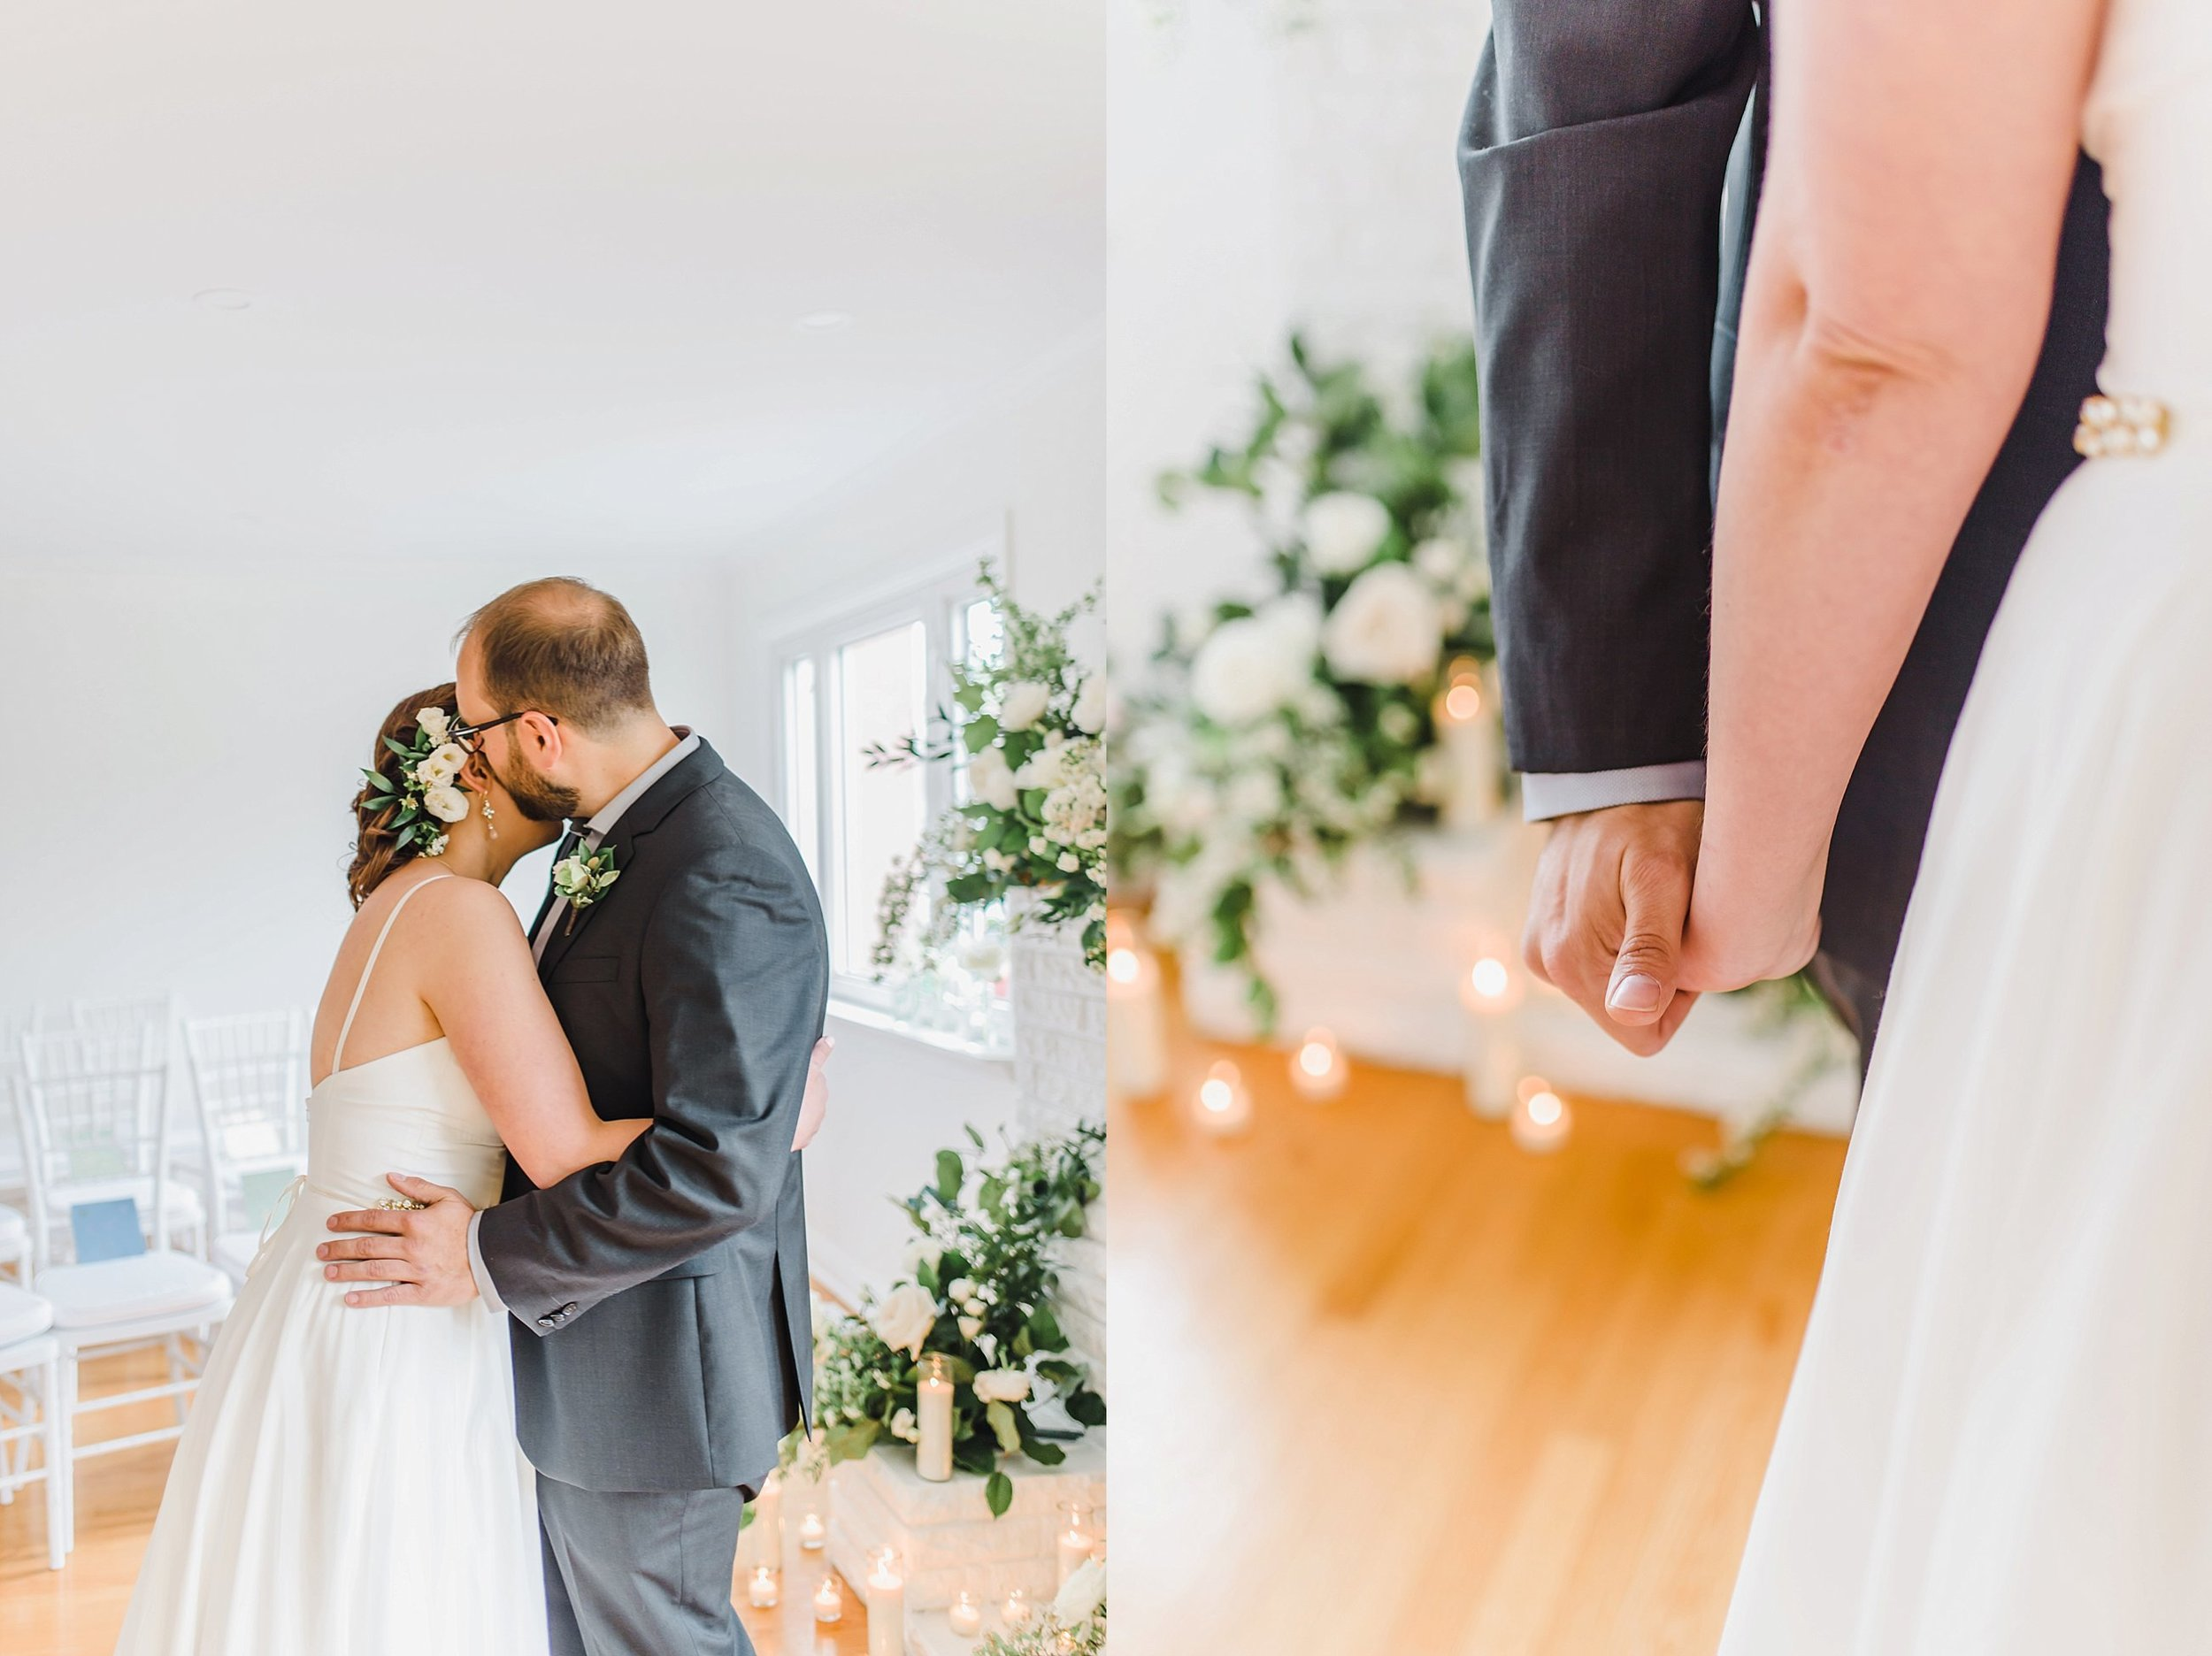 light airy indie fine art ottawa wedding photographer | Ali and Batoul Photography_1692.jpg